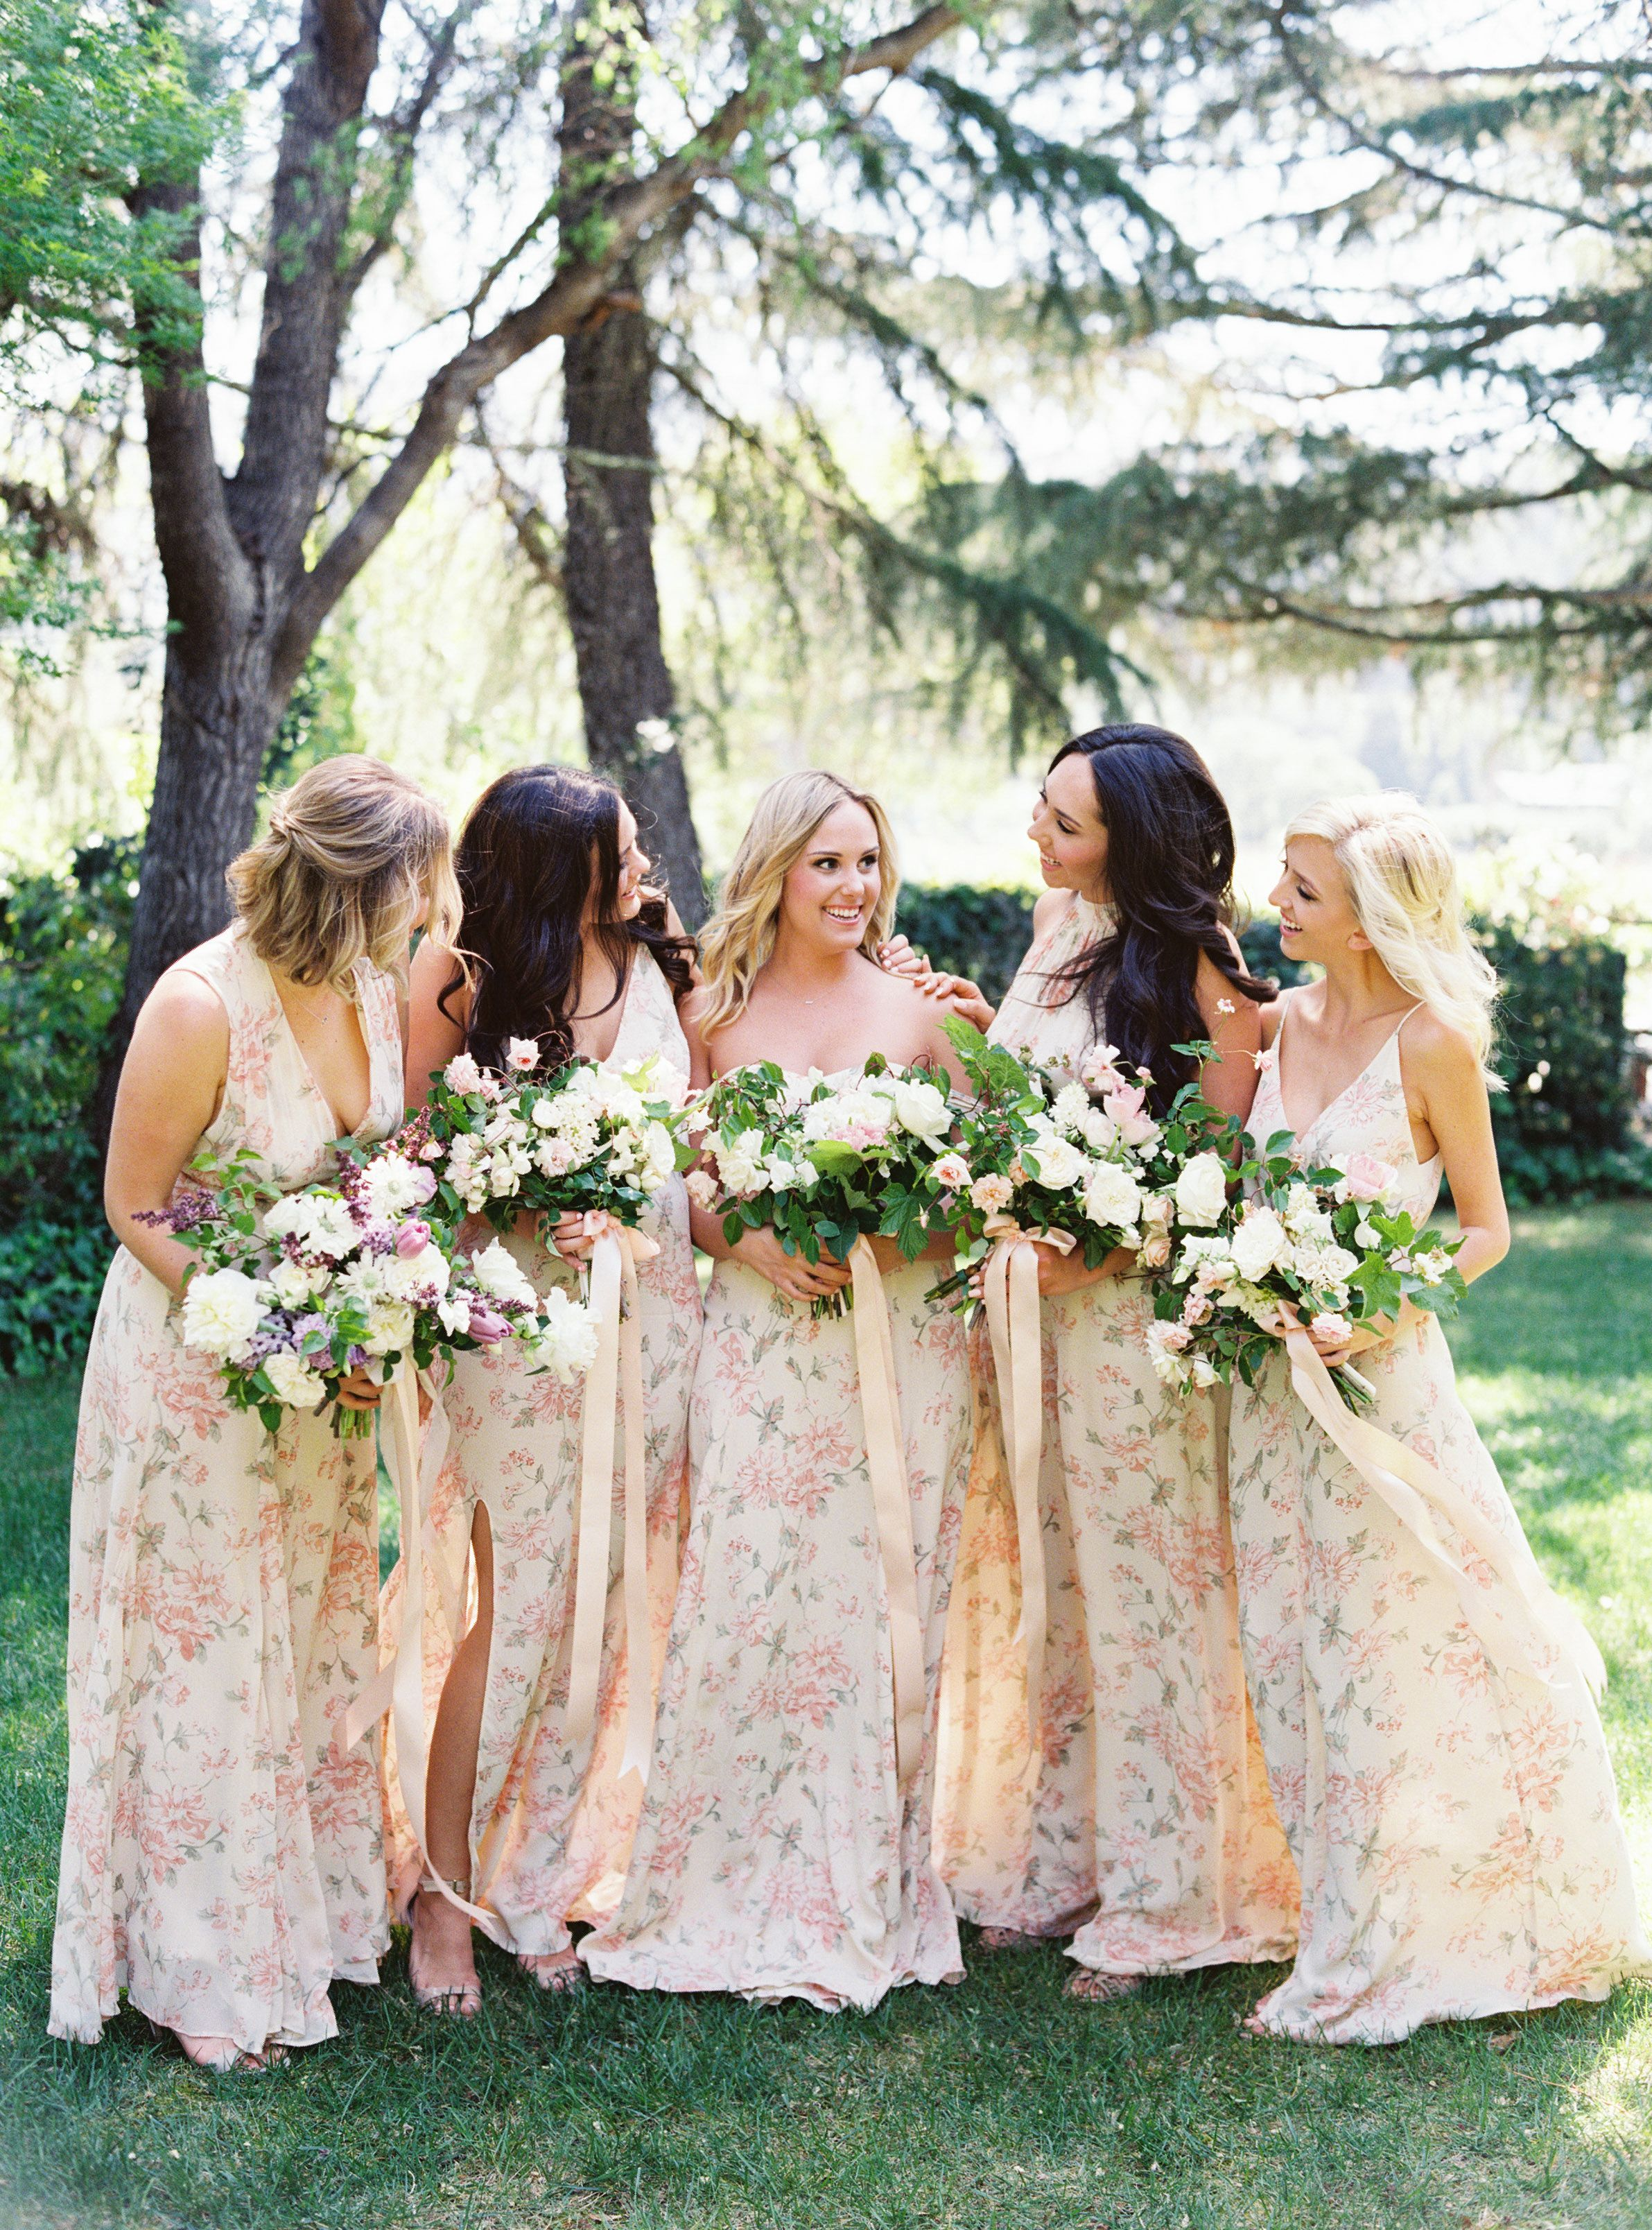 Floral print wedding dresses  The One Trend Your Bridesmaids Will LOVE You For  Printed